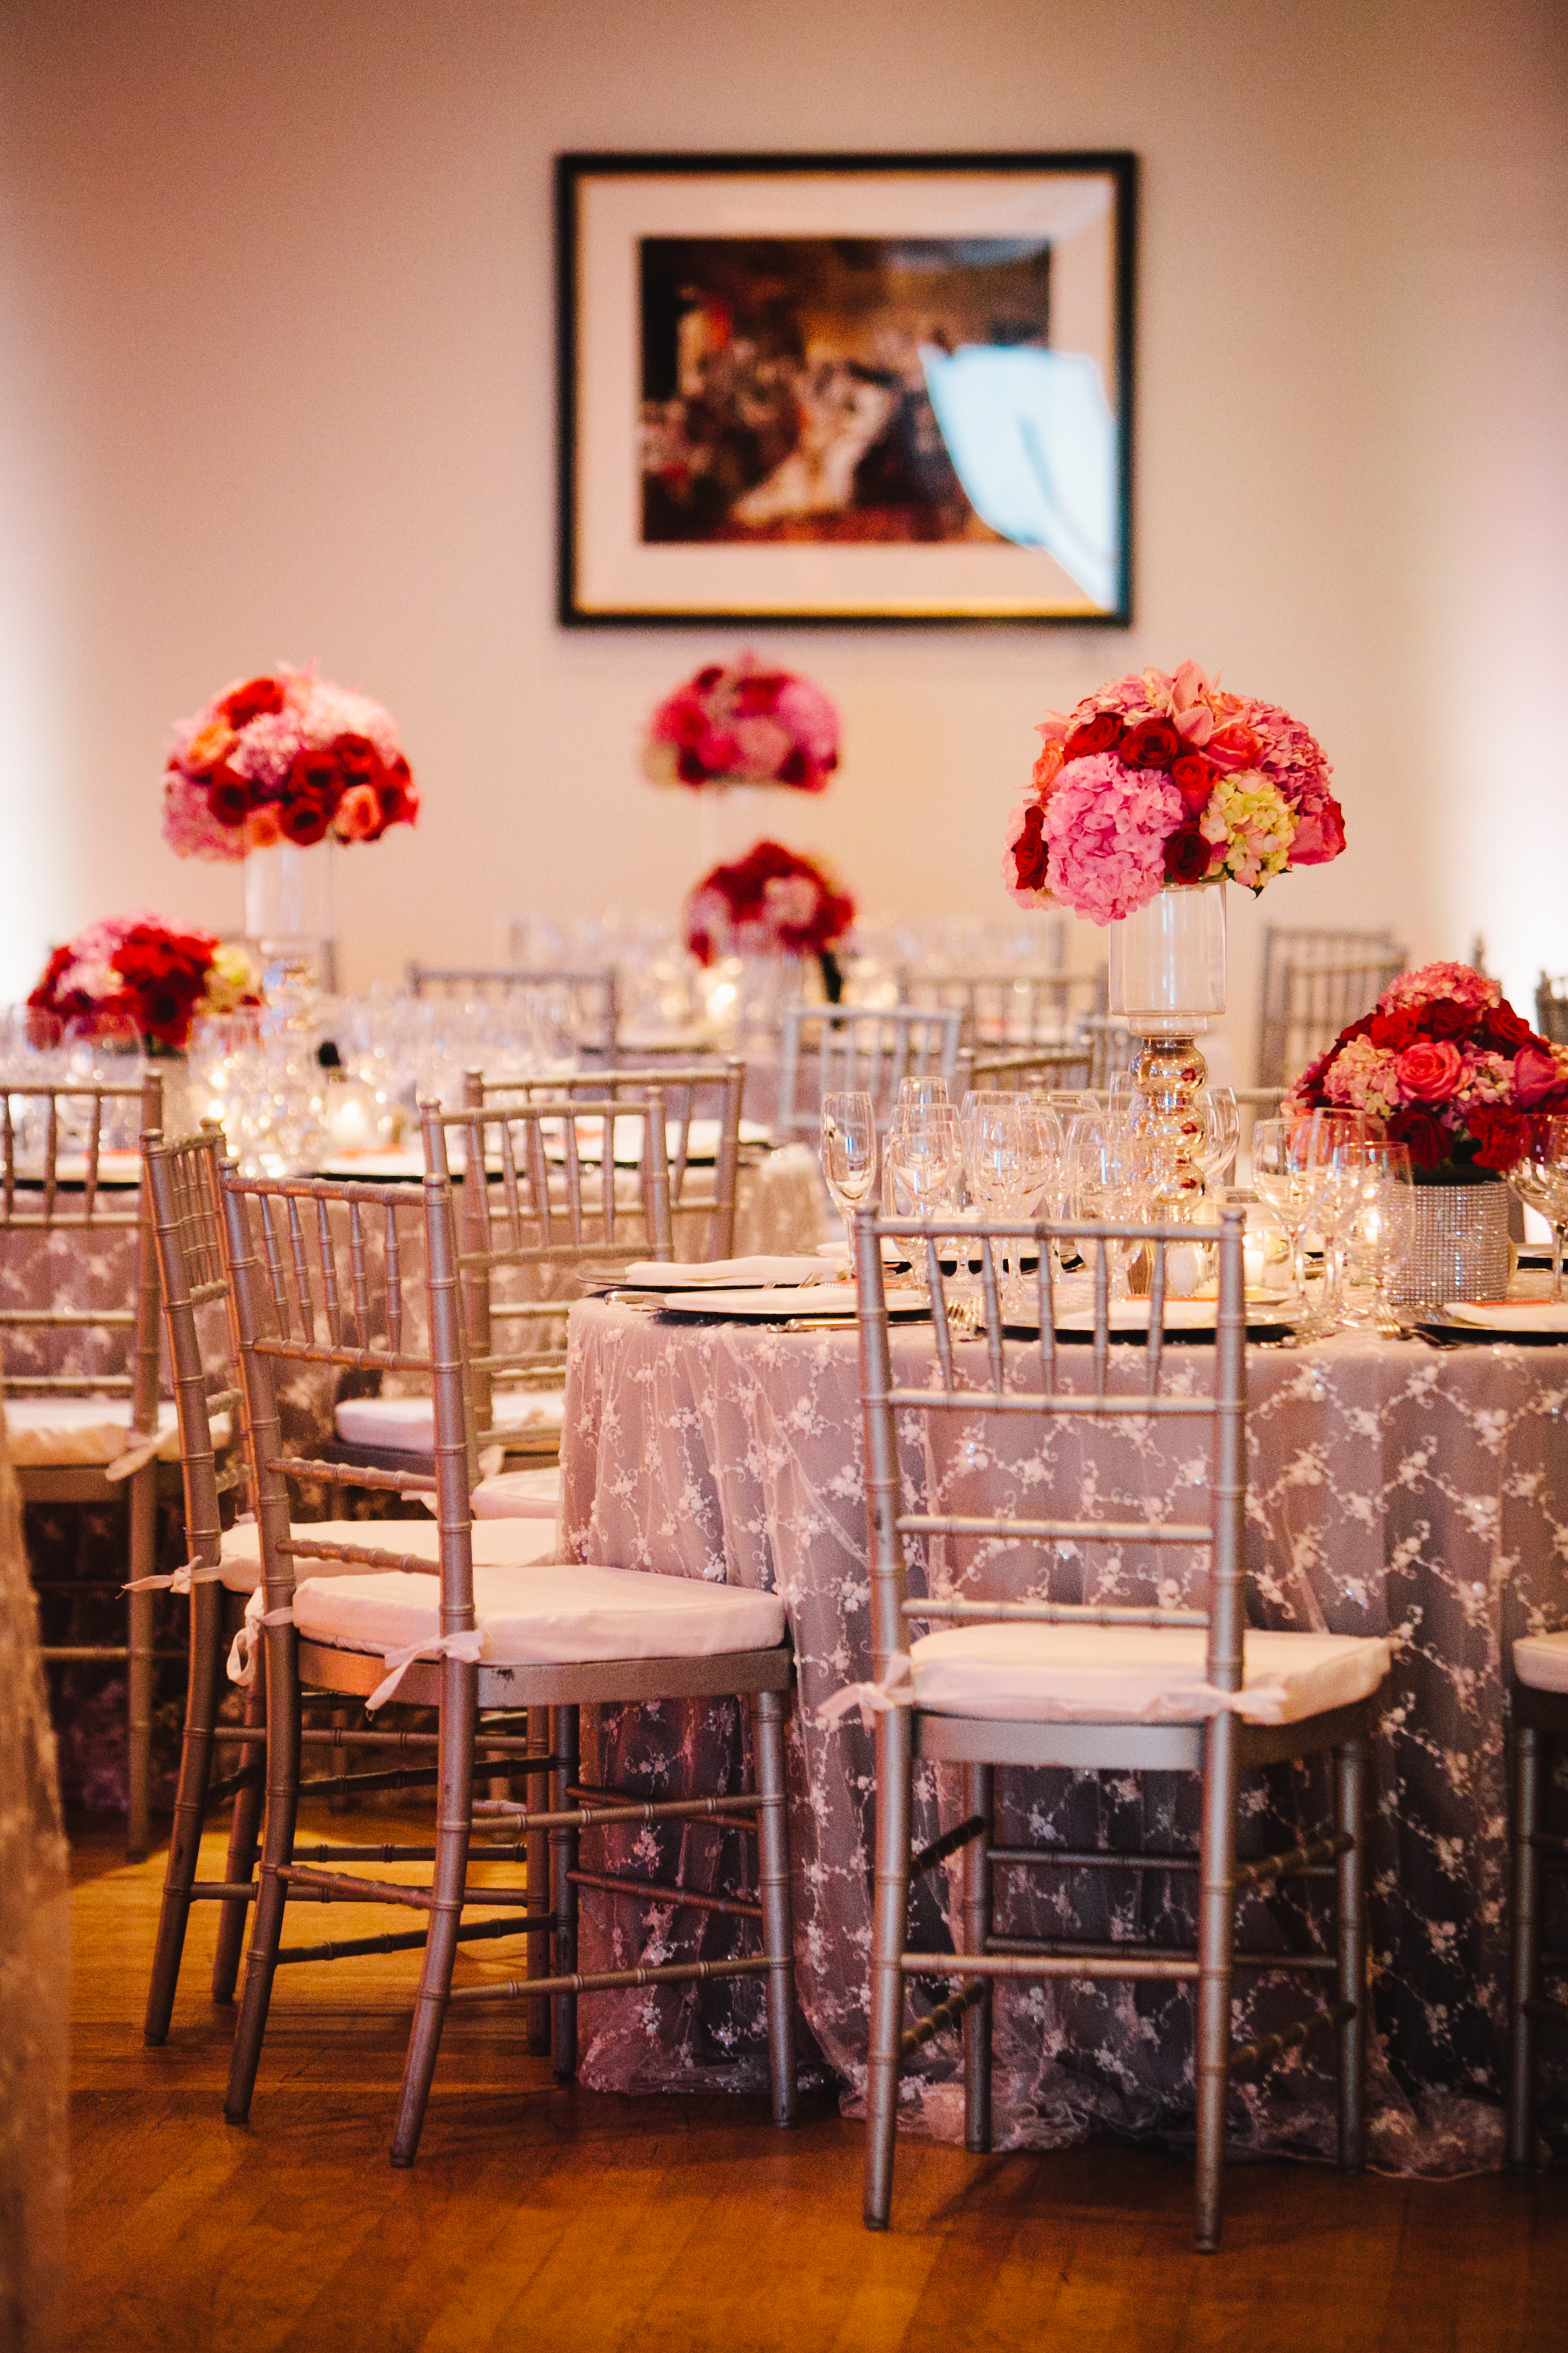 Reception, Flowers & Decor, Real Weddings, red, Centerpieces, Fall Weddings, West Coast Real Weddings, Fall Real Weddings, Crimson, West Coast Weddings, Romantic Real Weddings, Glamorous Real Weddings, Glamorous Weddings, Romantic Real Wedding